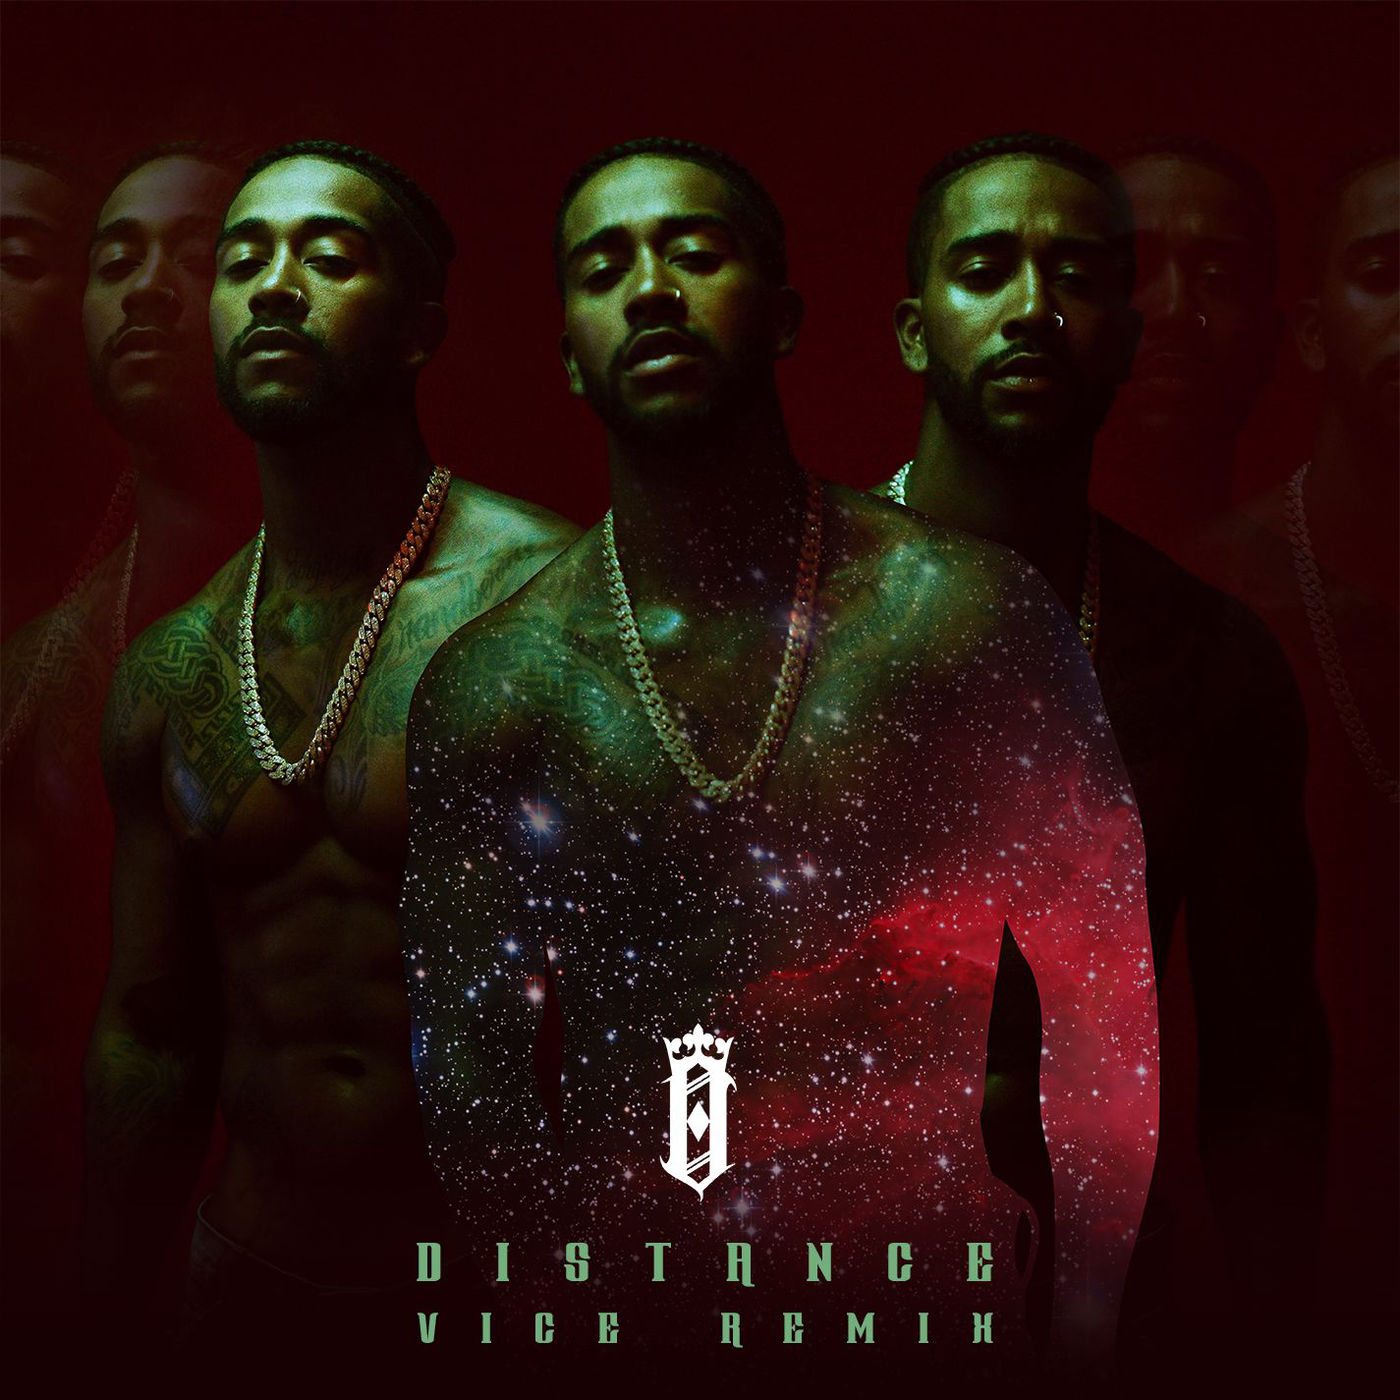 Omarion - Distance (VICE Remix) - Single Cover